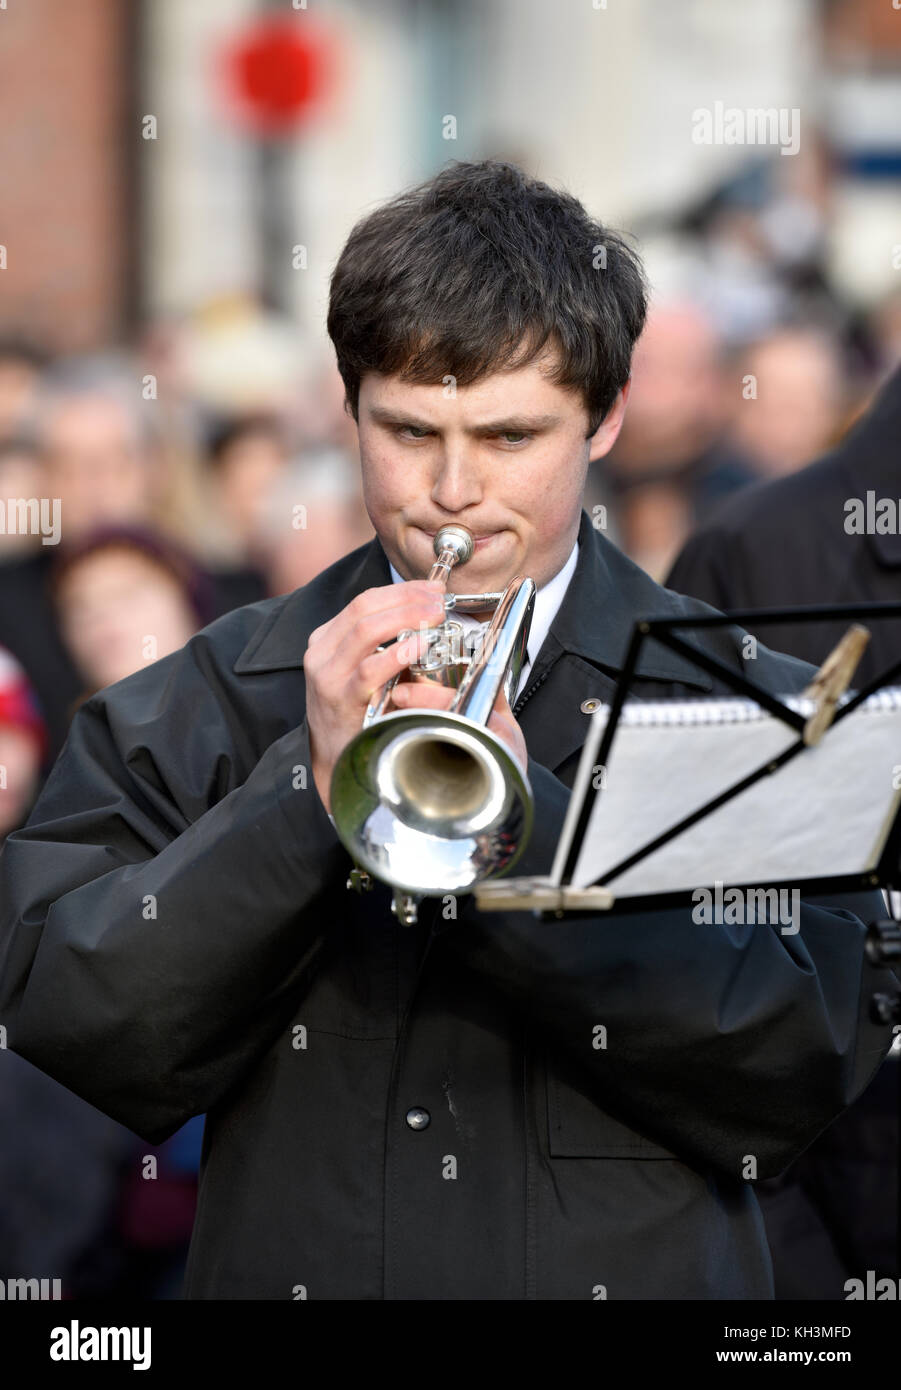 A bugler sounding The Last Post during Remembrance Sunday, War Memorial, High Street, Haslemere, Surrey, UK. Sunday - Stock Image